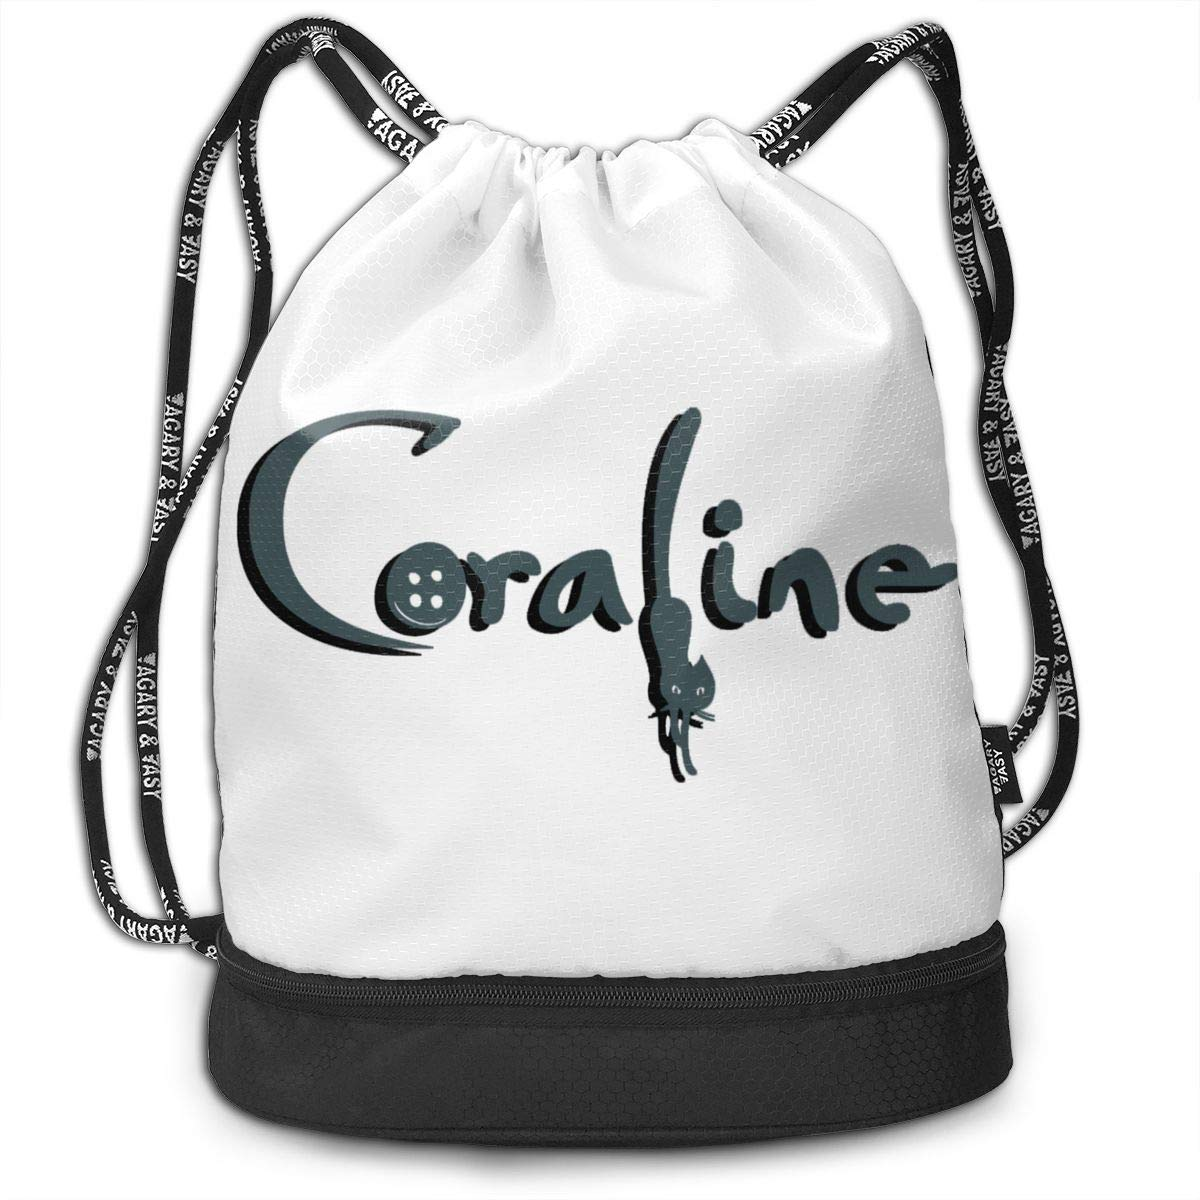 AgoodShop Coraline Logo Drawstring Backpack Sport Gym Travel Bag